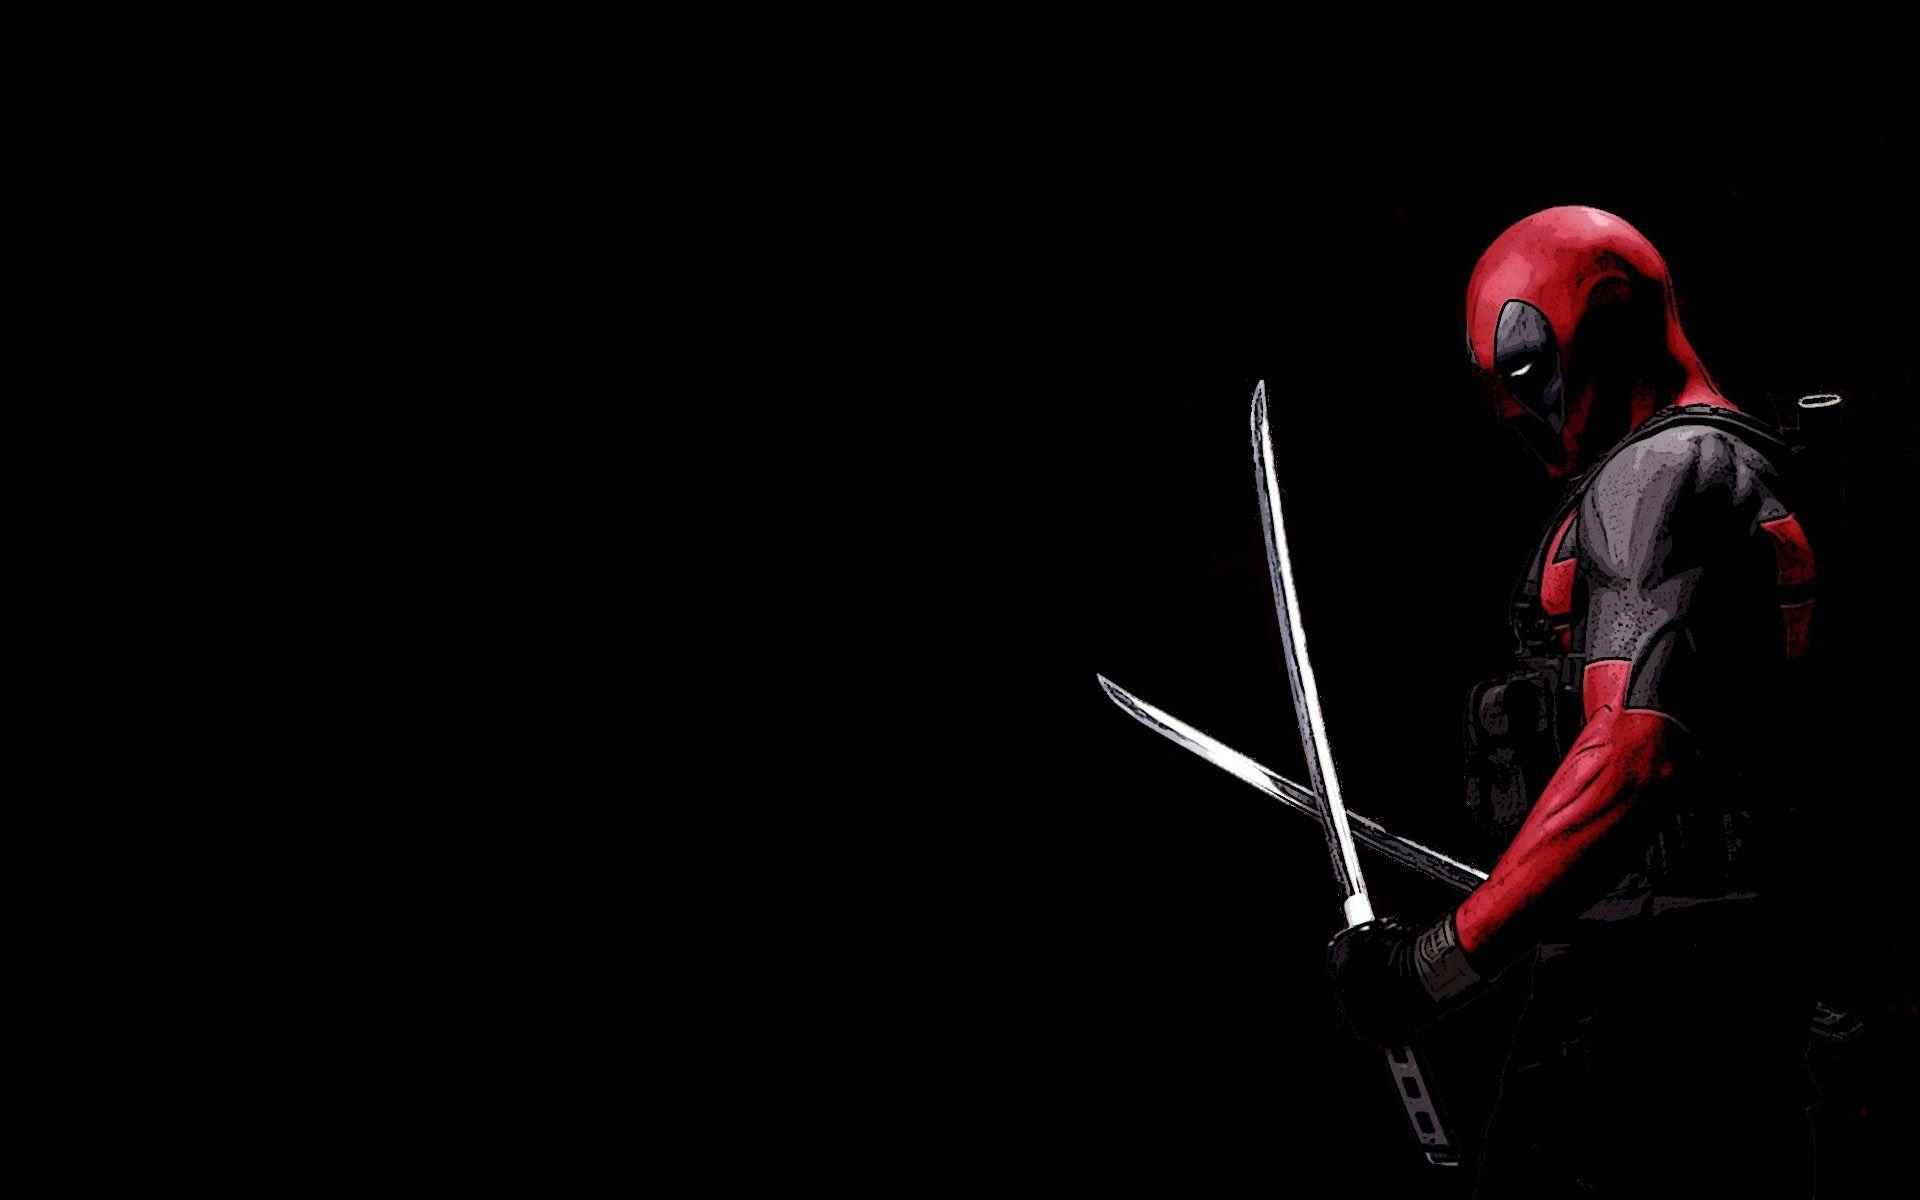 deadpool wallpapers   full hd wallpaper search